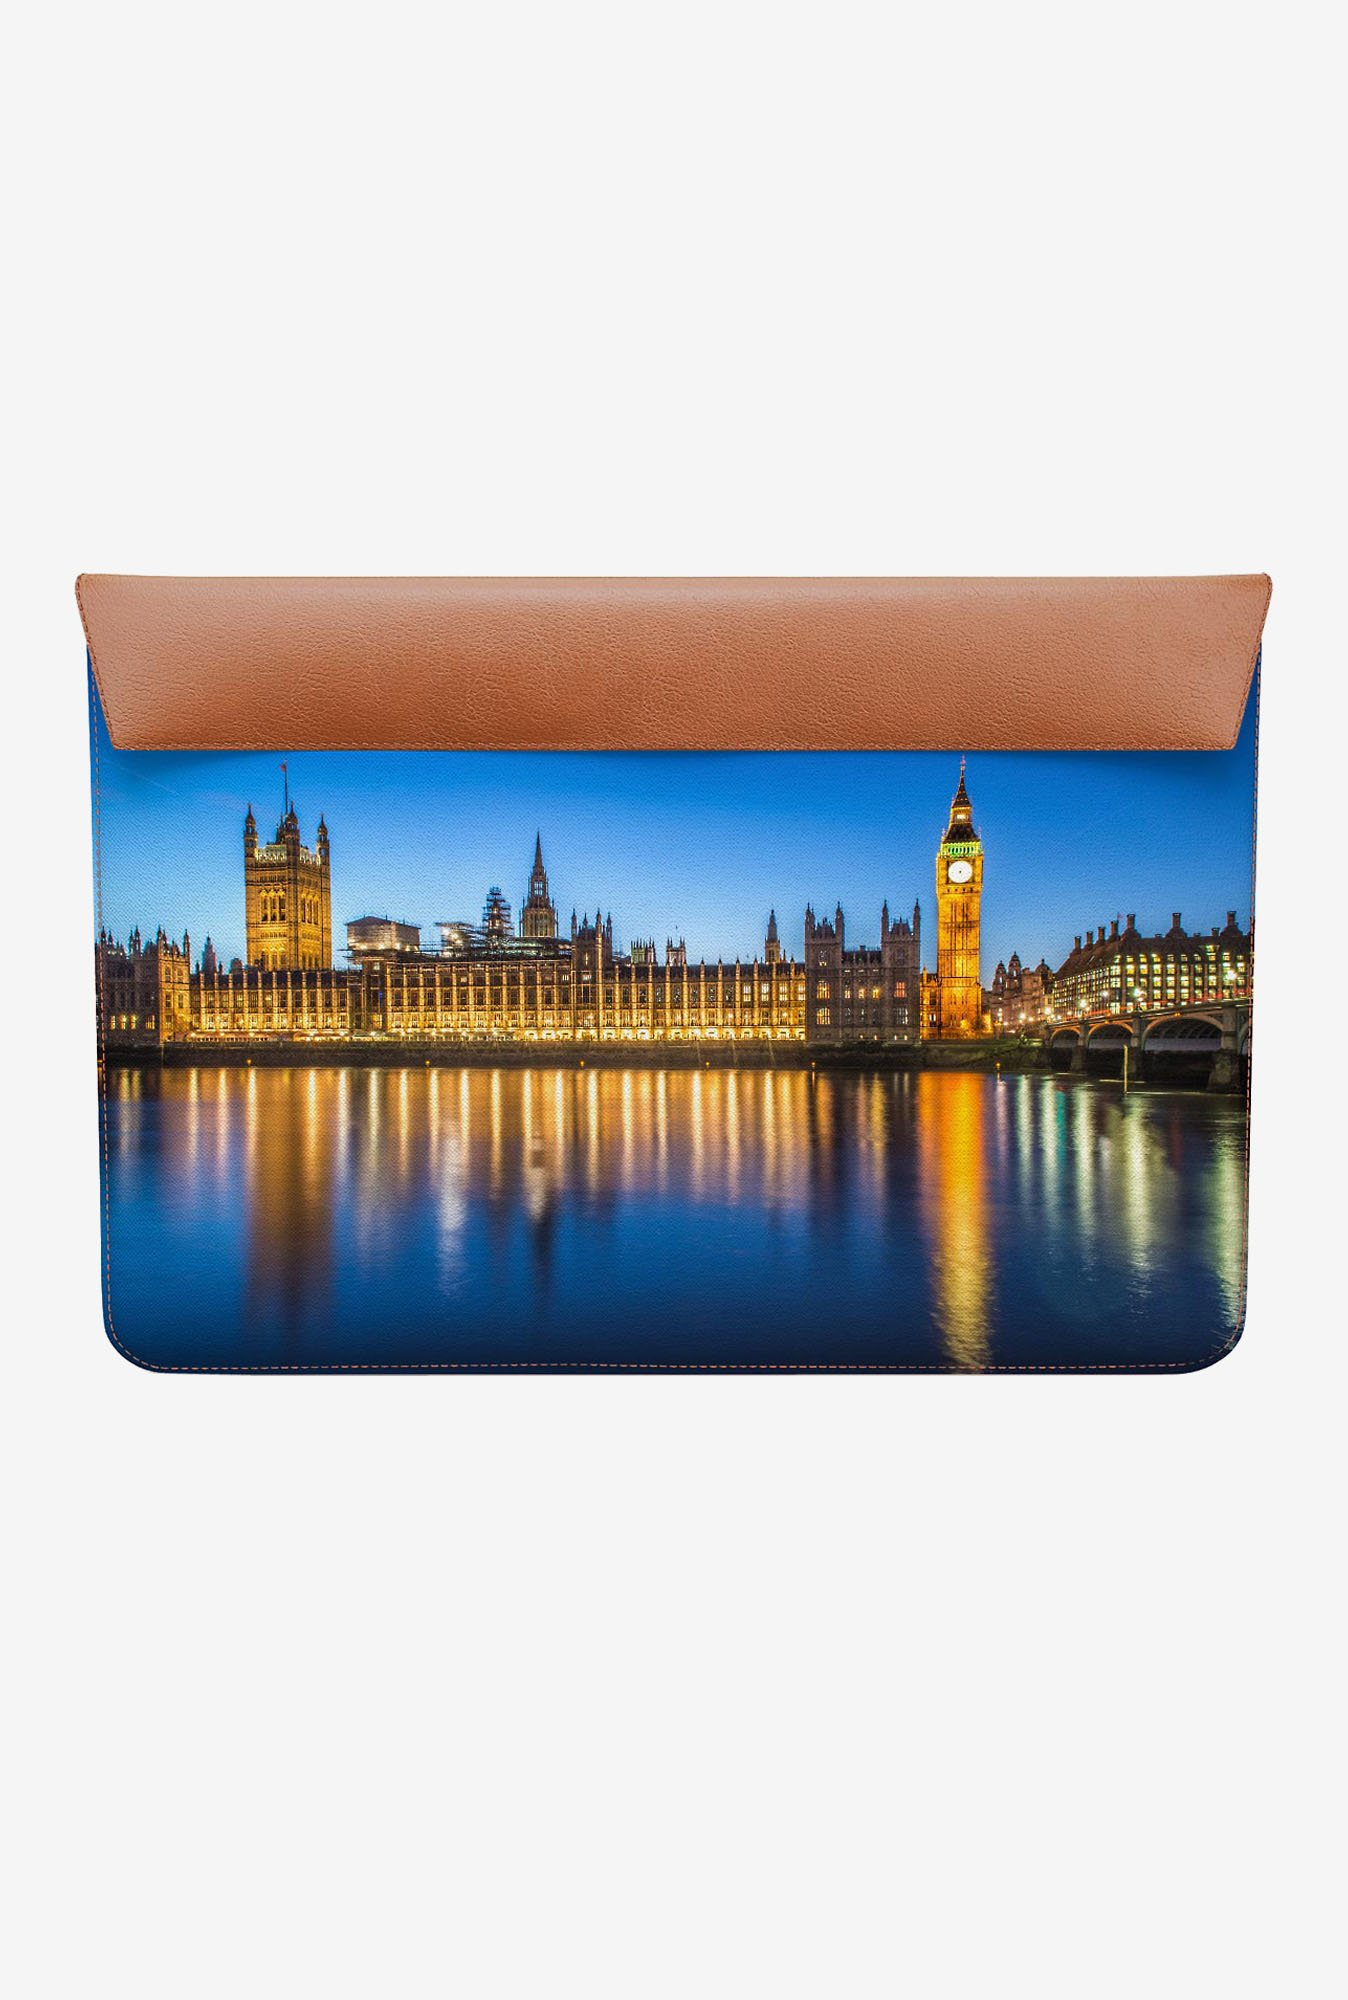 DailyObjects Palace MacBook Pro 15 Envelope Sleeve